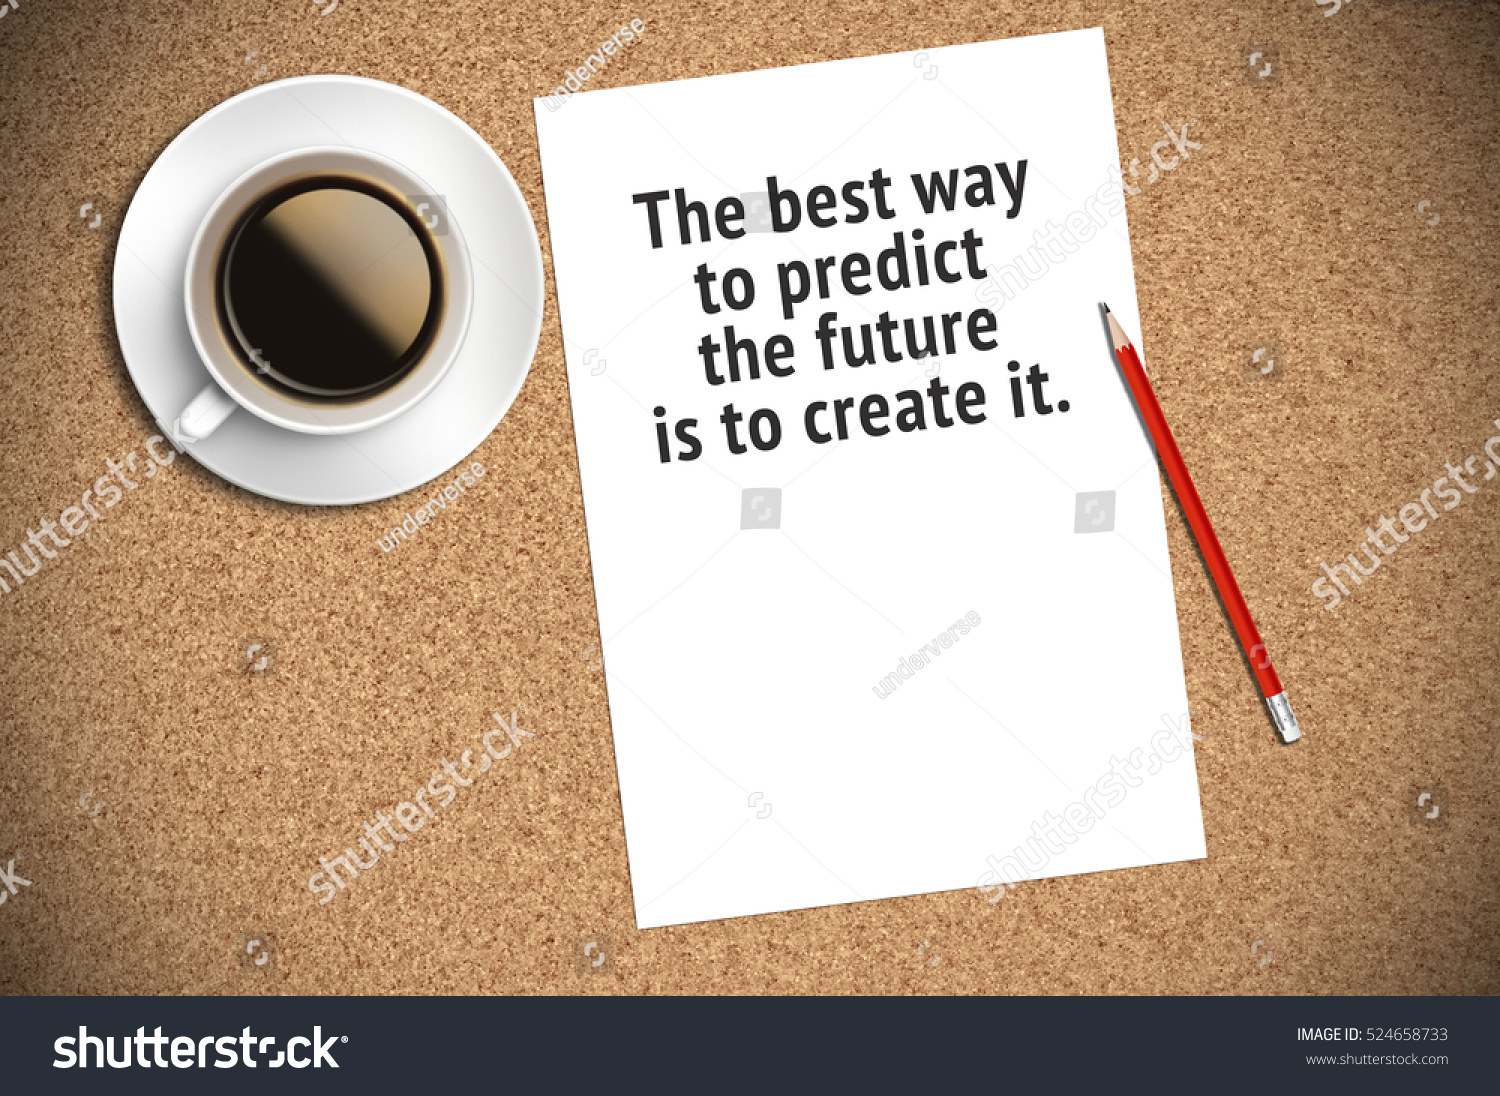 Inspirational Motivating Quote On Paper With Coffee, Pencil And Cork  Background. The Best Way